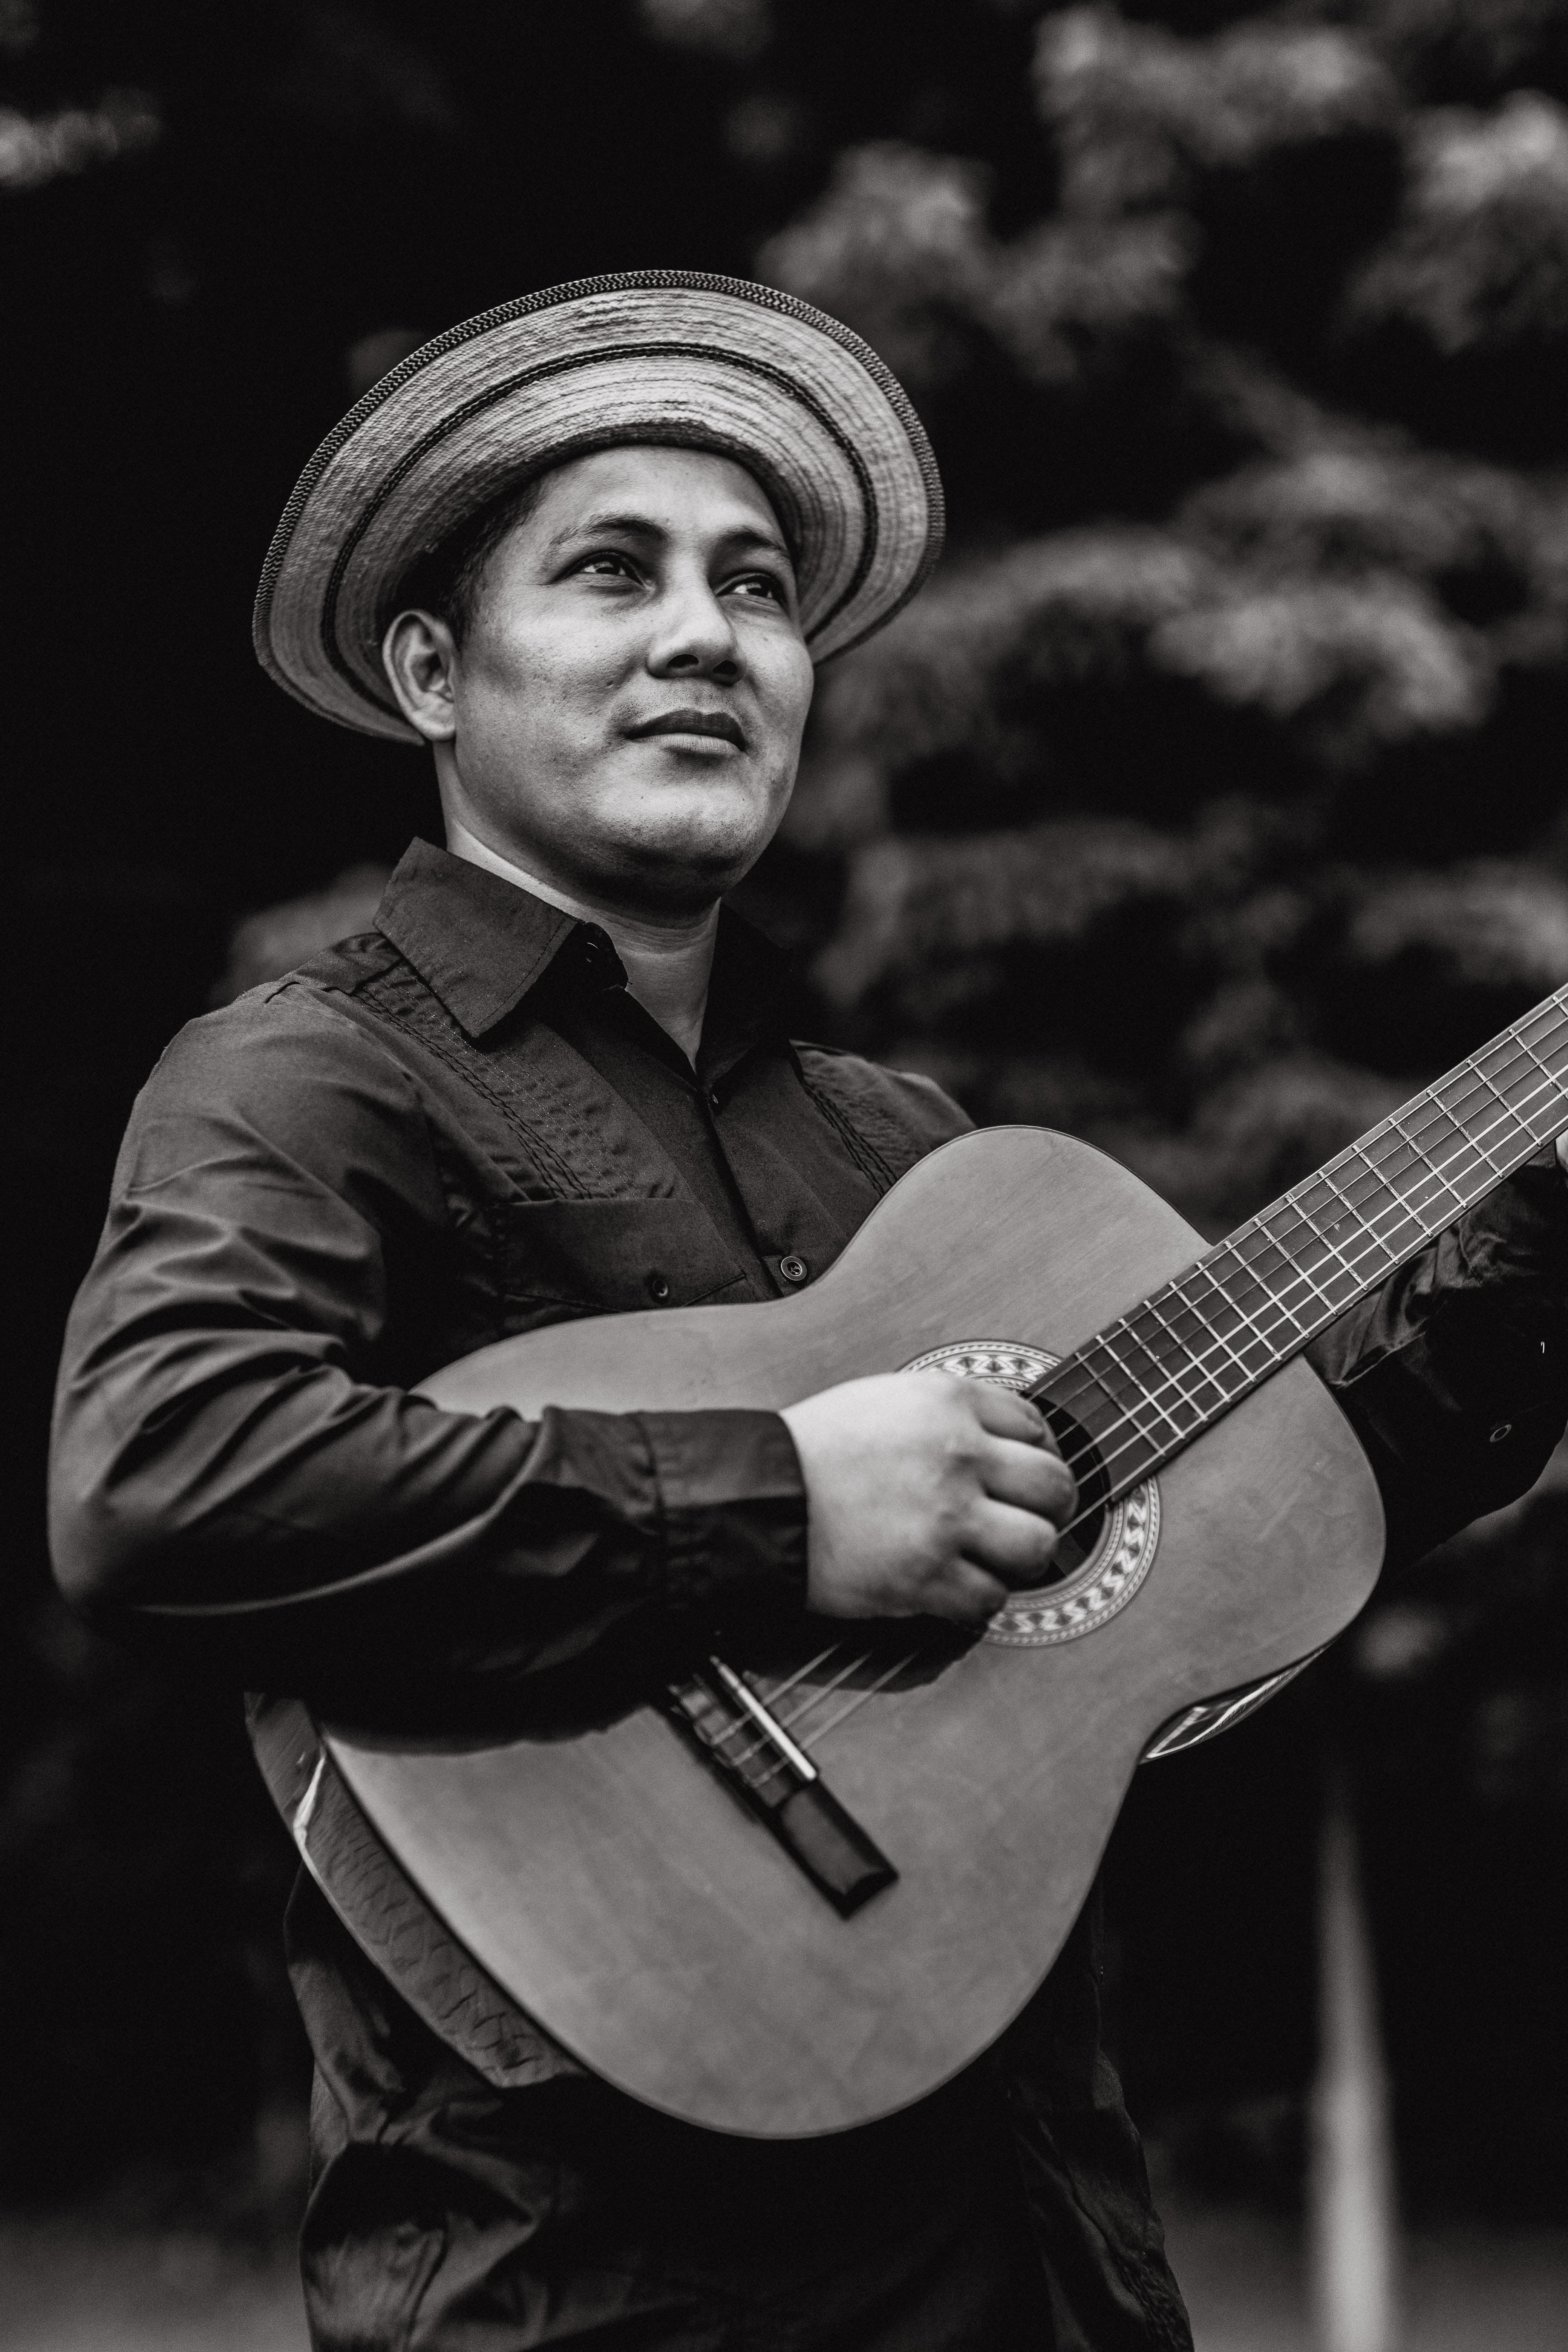 Grayscale Photography of Man Playing Guitar